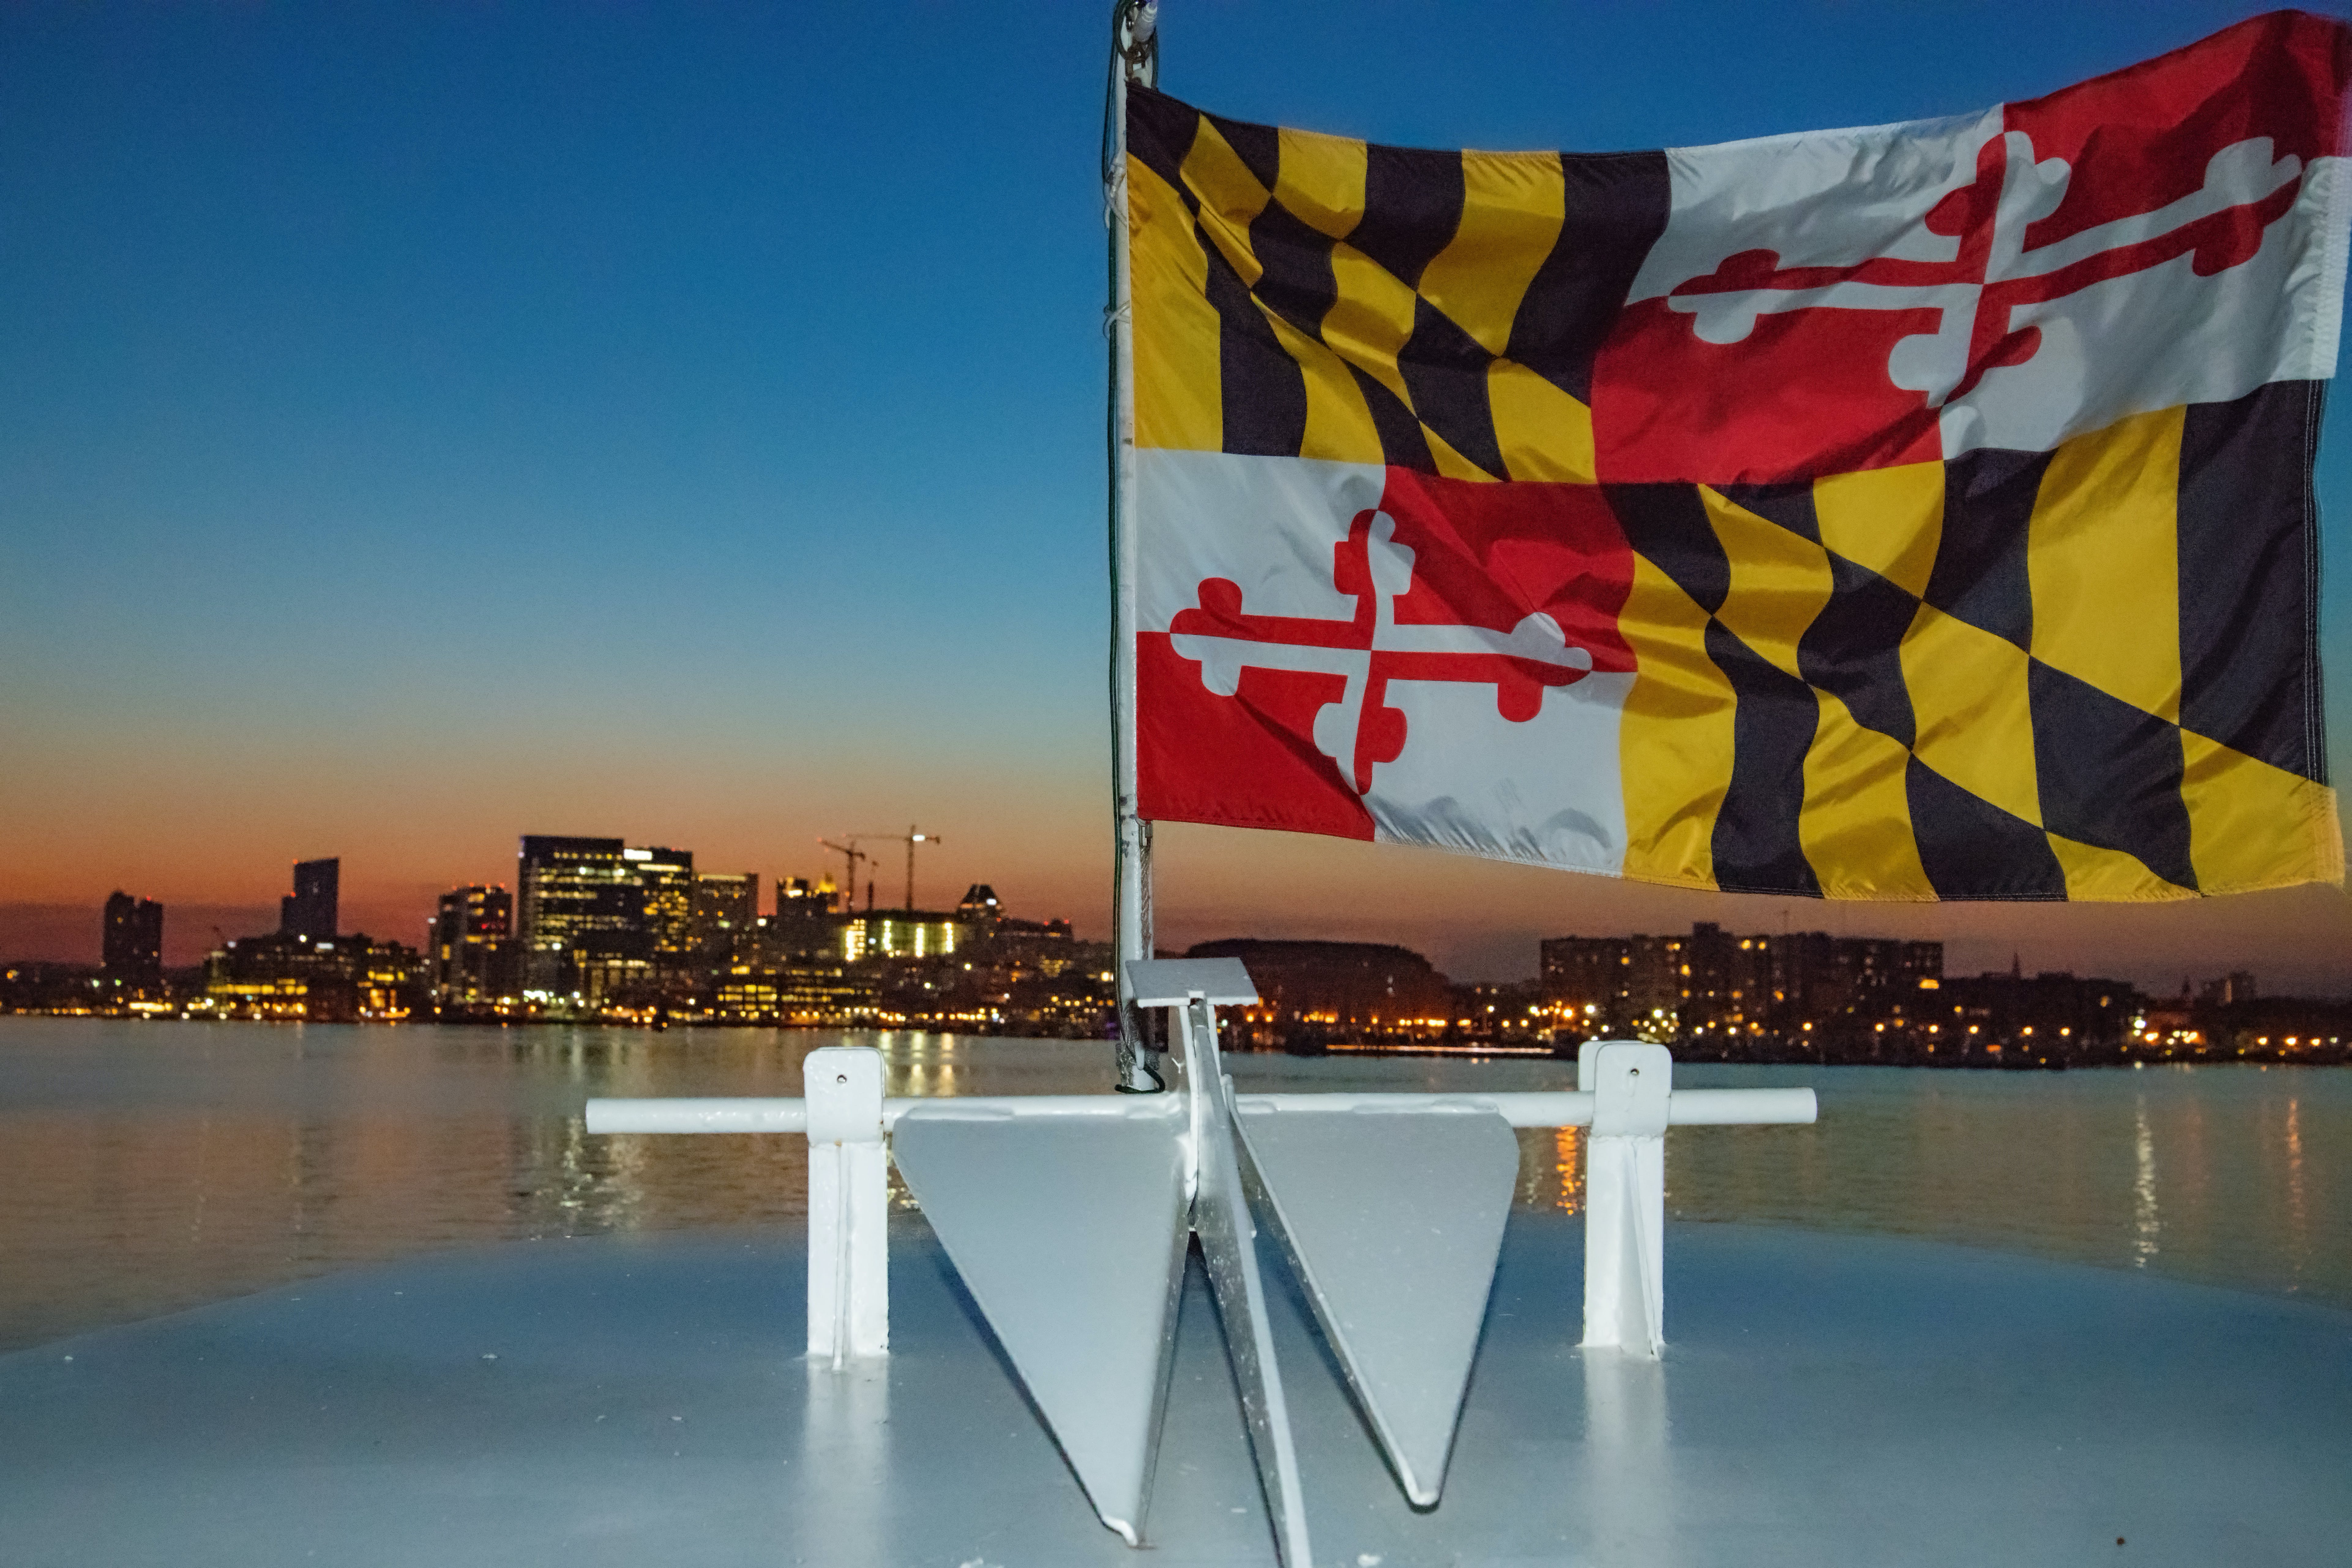 Free stock photo of flag, boat deck, Maryland